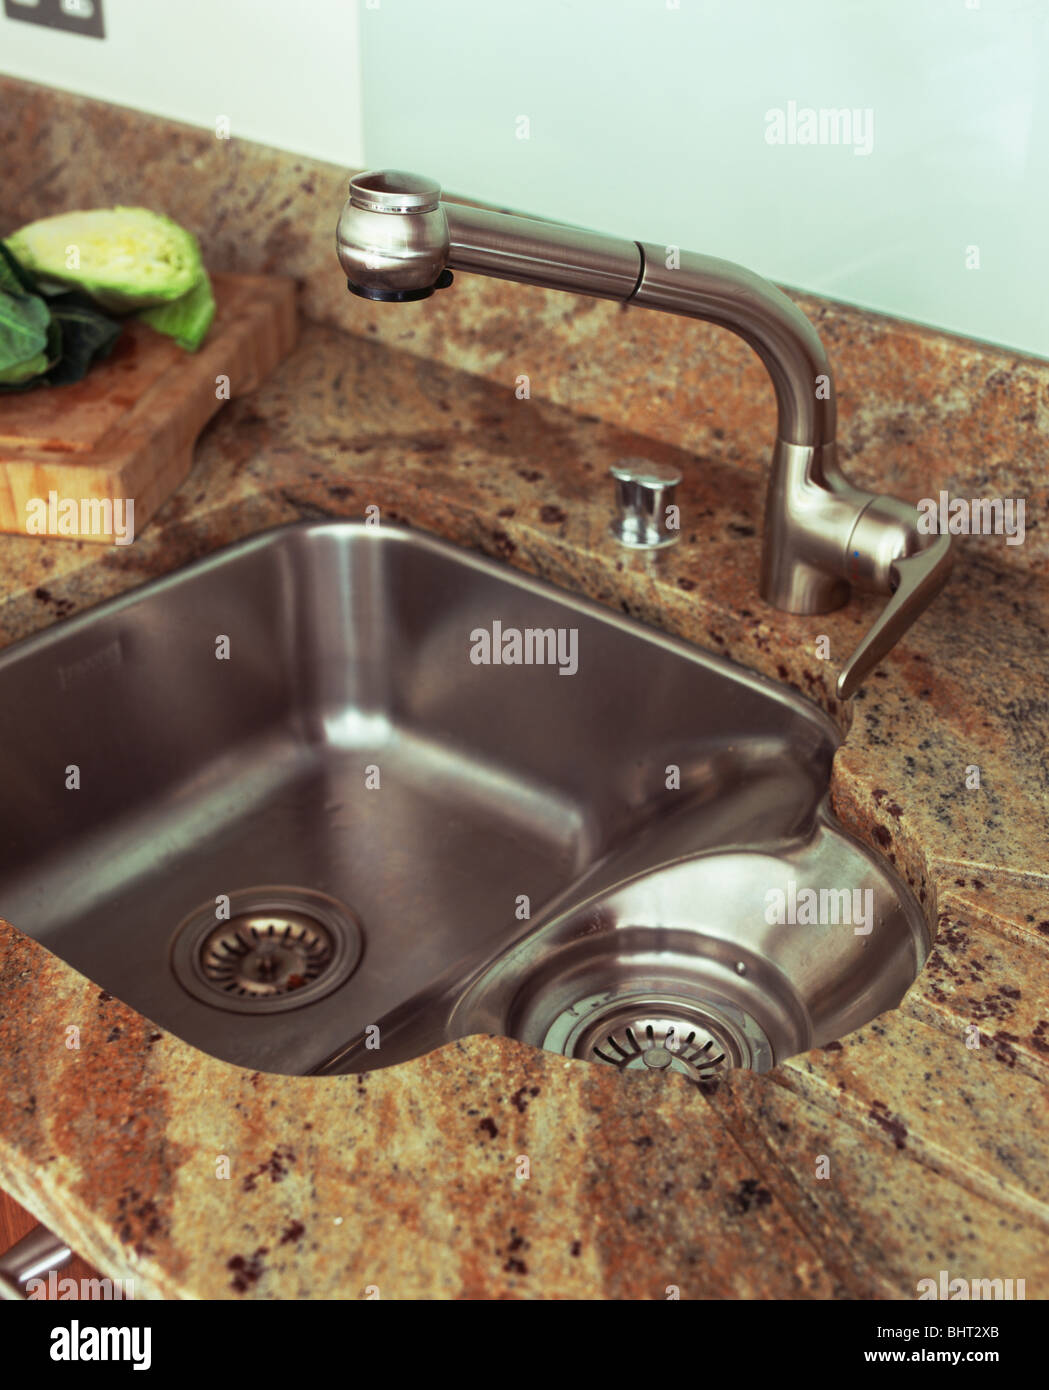 Close Up Of Stainless Steel Tap And Sink With Integral Drainer In Brown  Granite Worktop